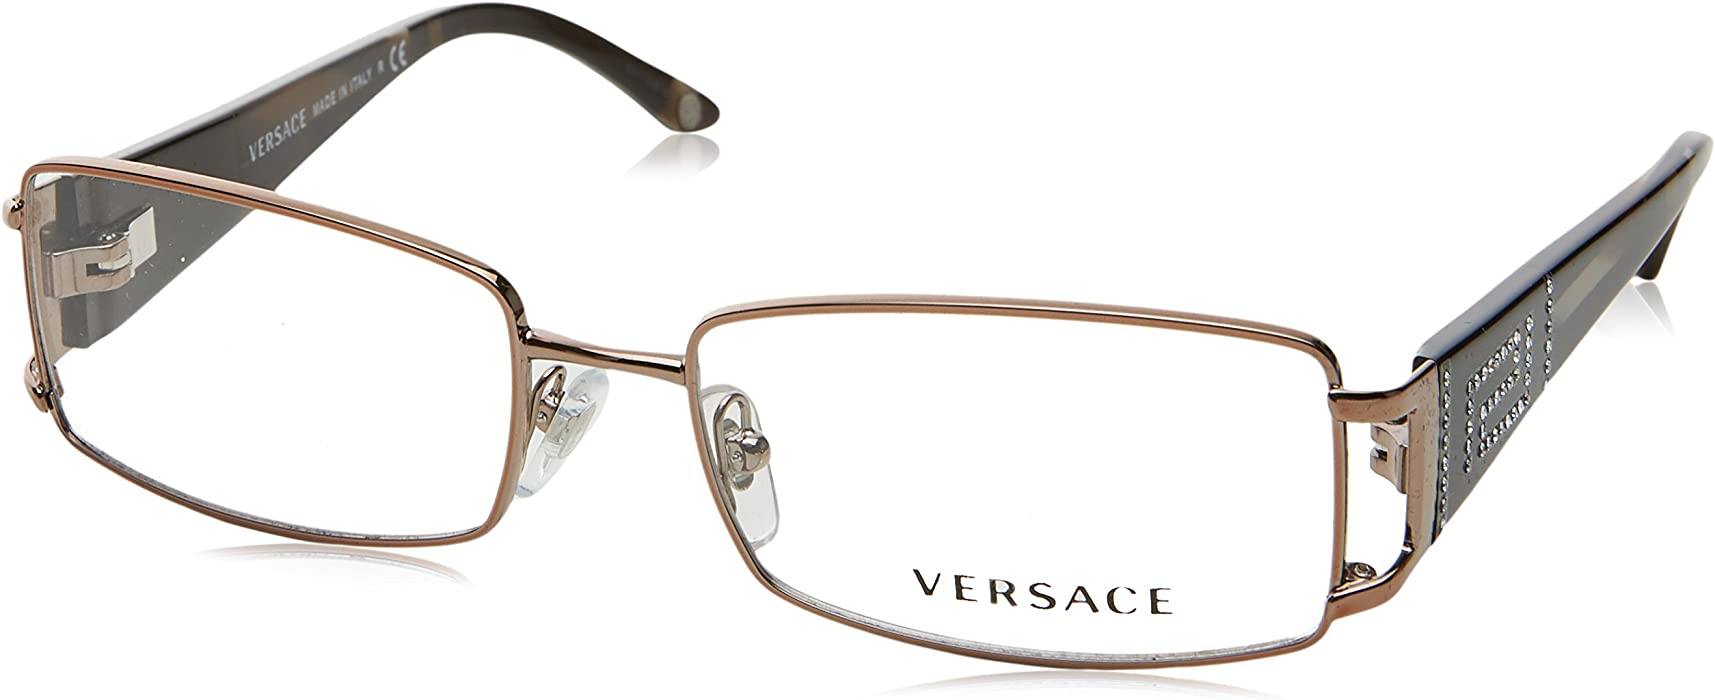 7176d6db773c Amazon.com  Versace VE1163B 1013 Eyeglasses Brown Demo Lens 52-16 ...